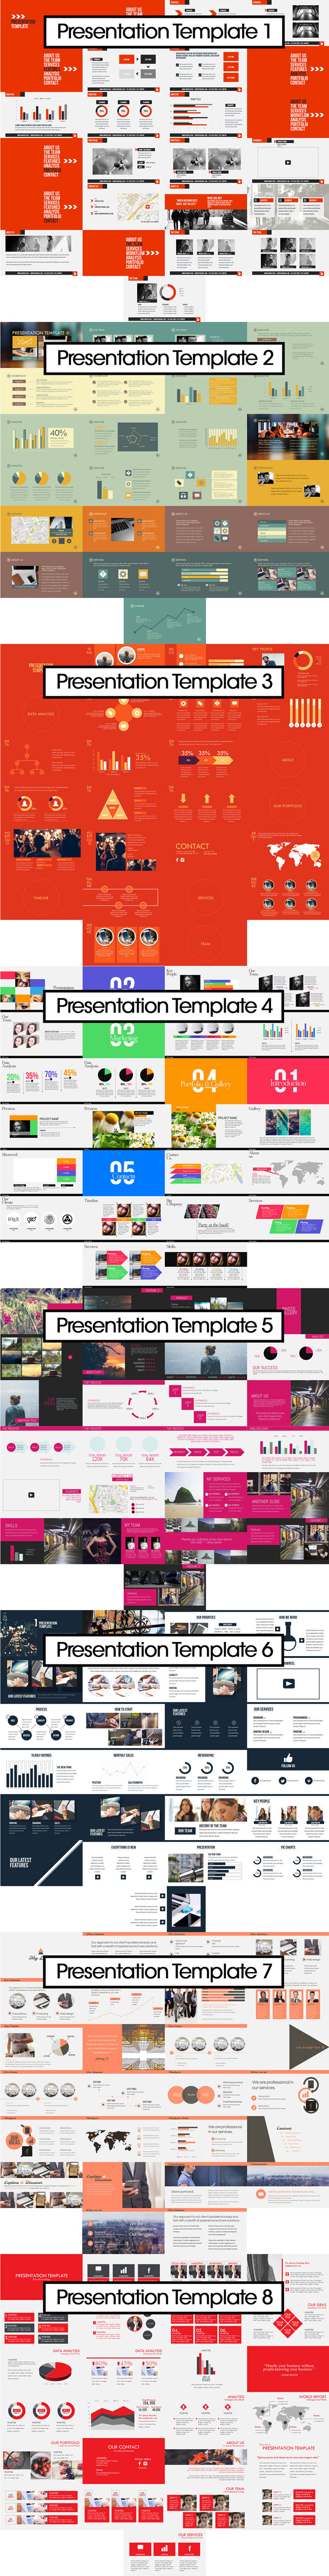 PresentationTemplates